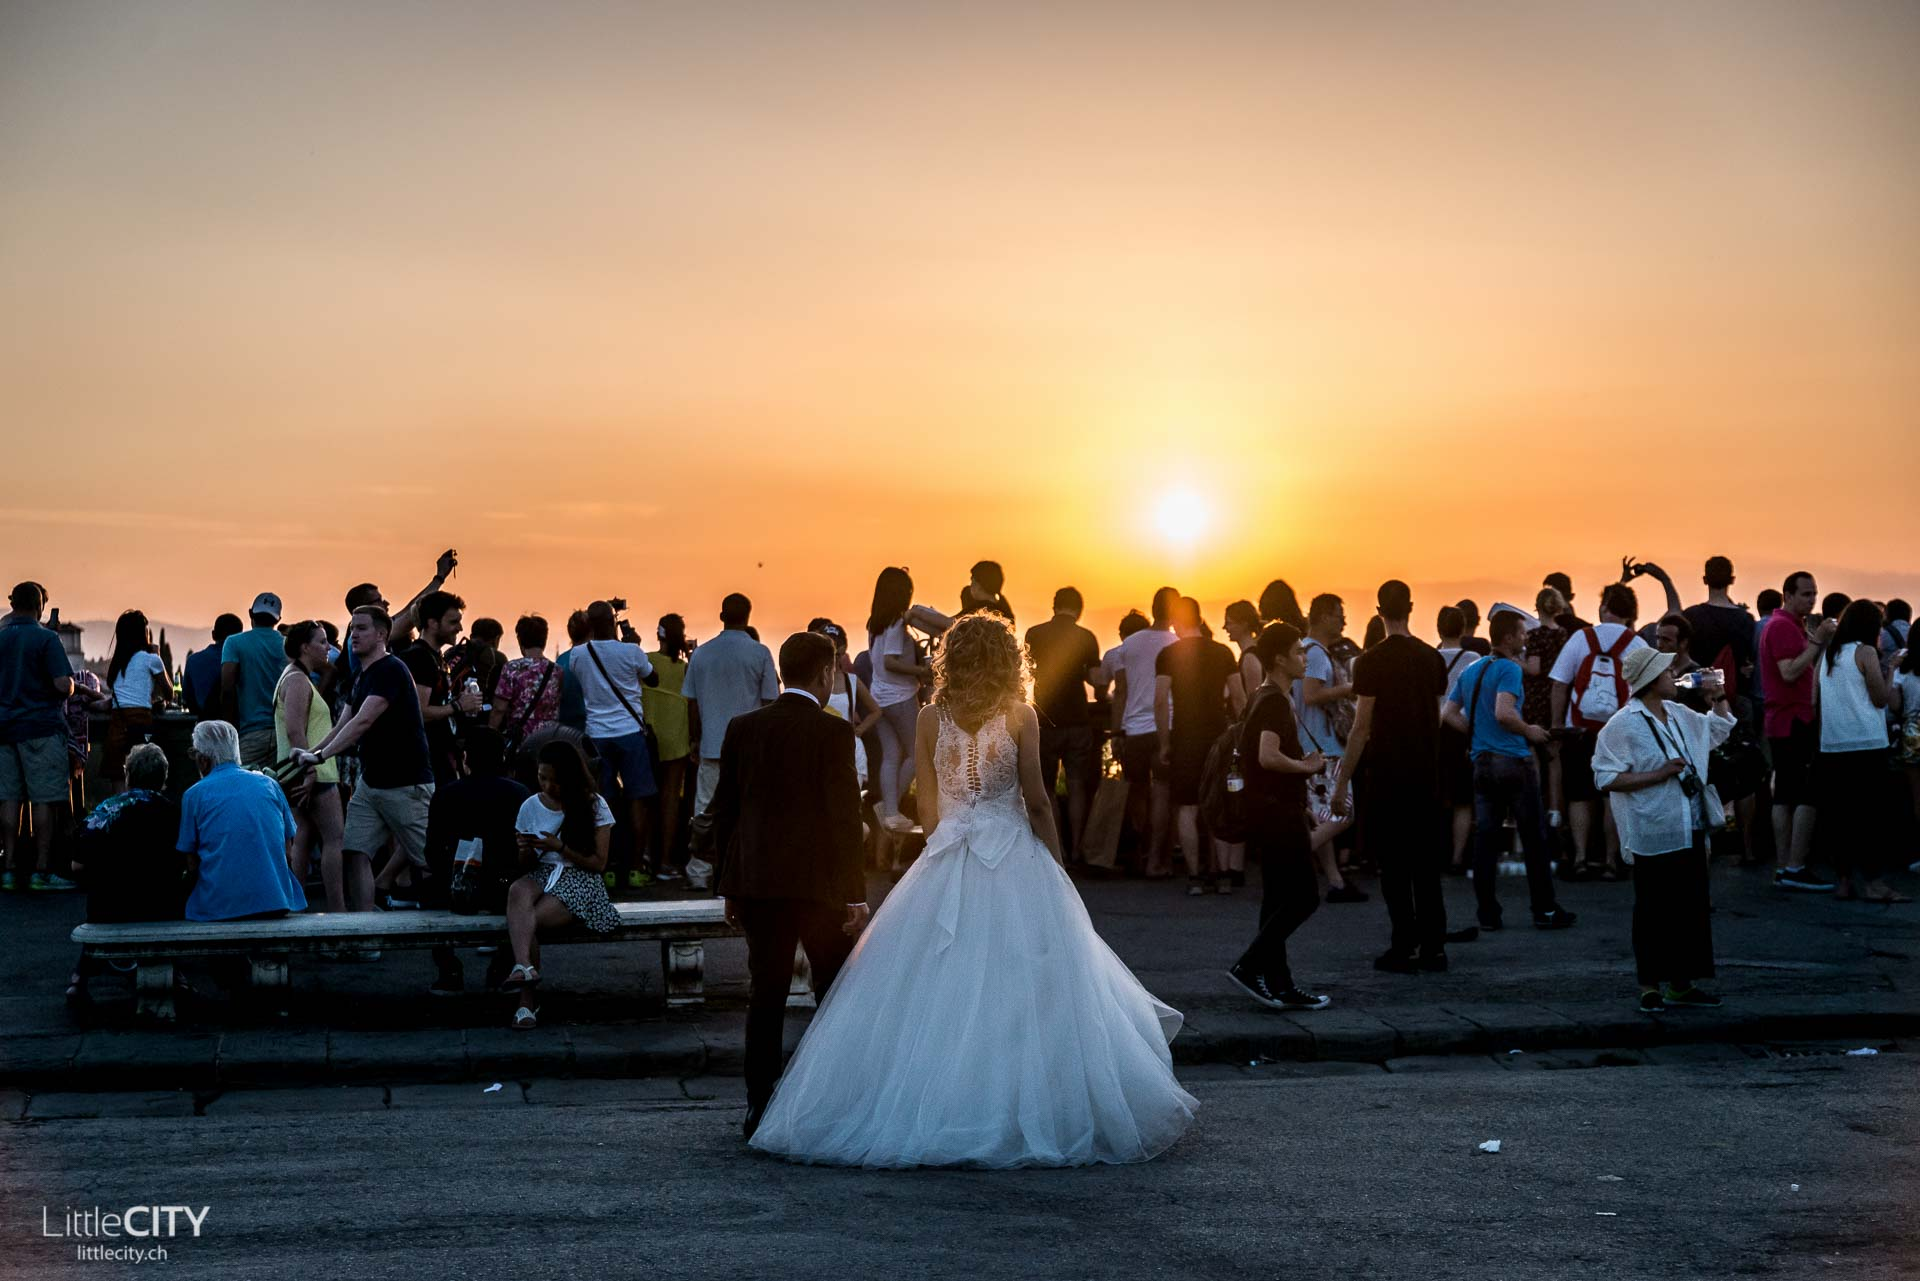 Florenz Piazzale Michelangelo Wedding Shoot Sunset